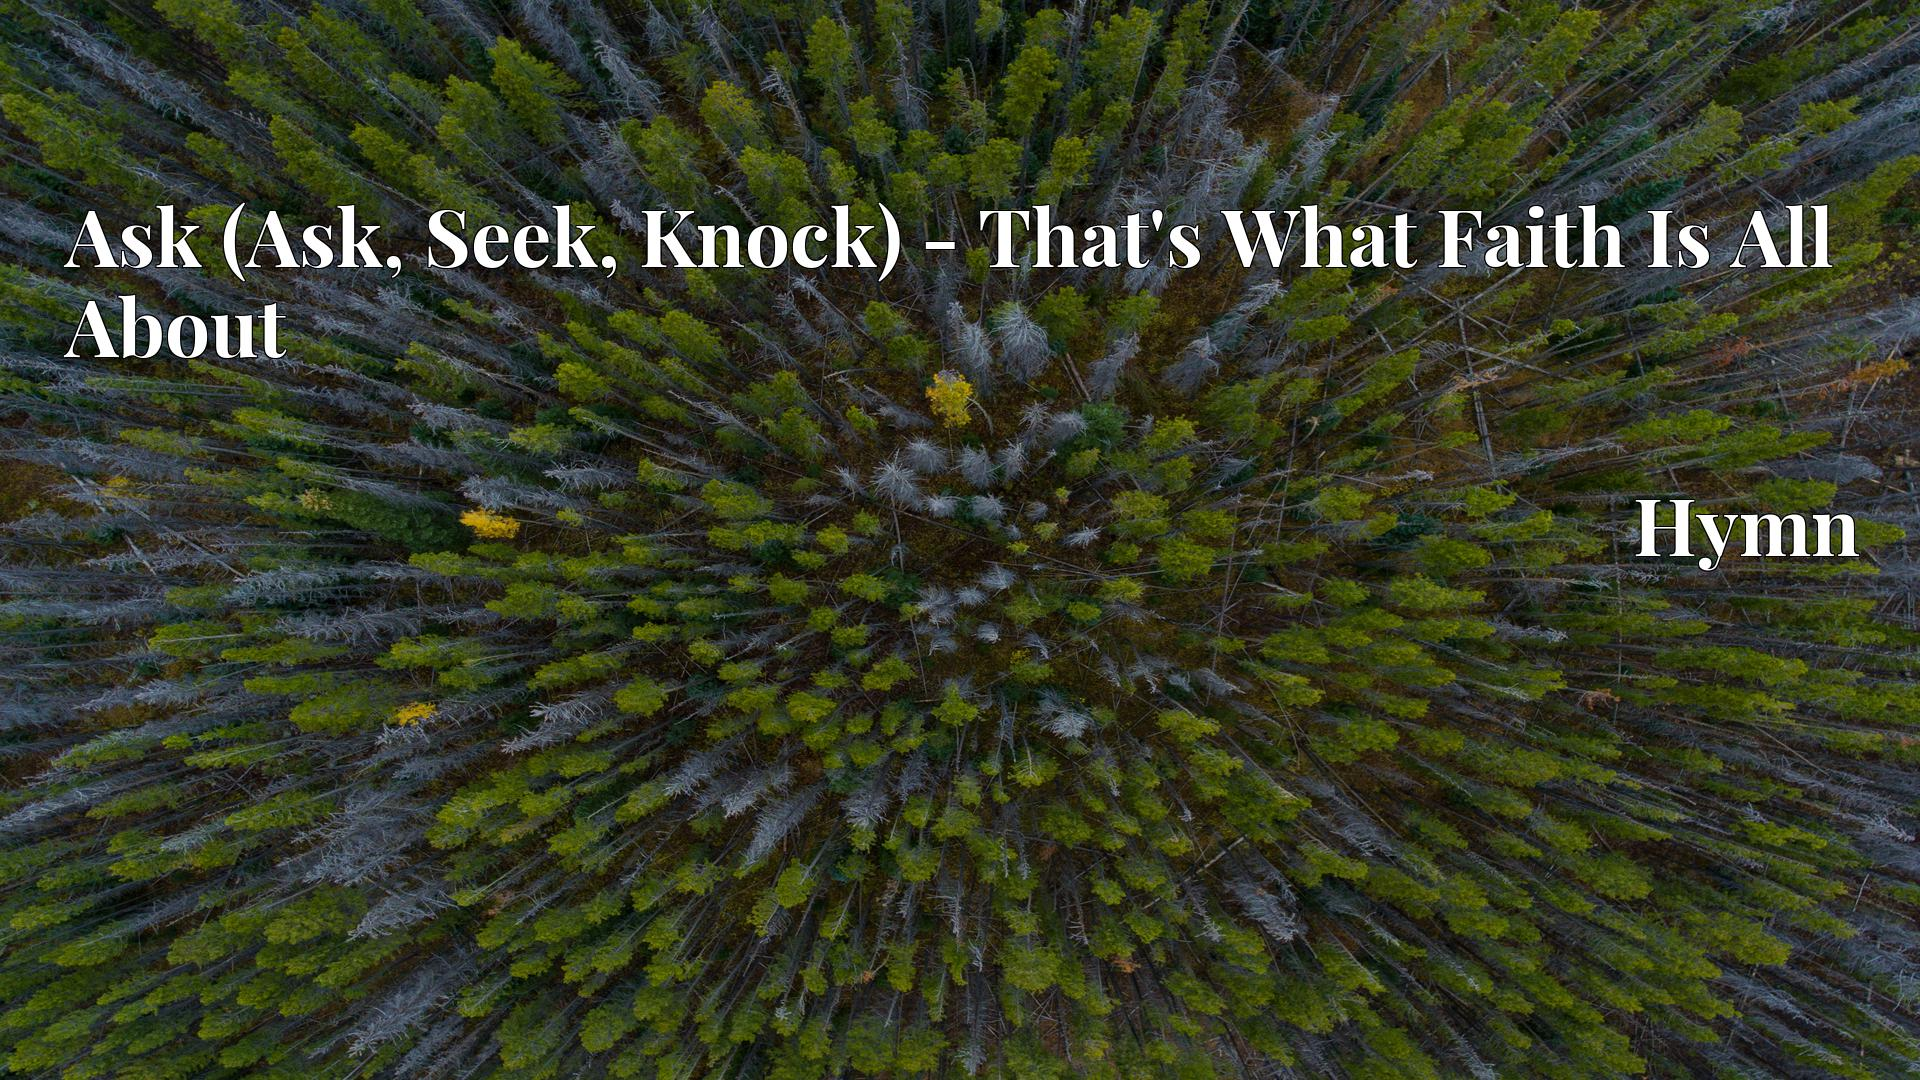 Ask (Ask, Seek, Knock) - That's What Faith Is All About - Hymn